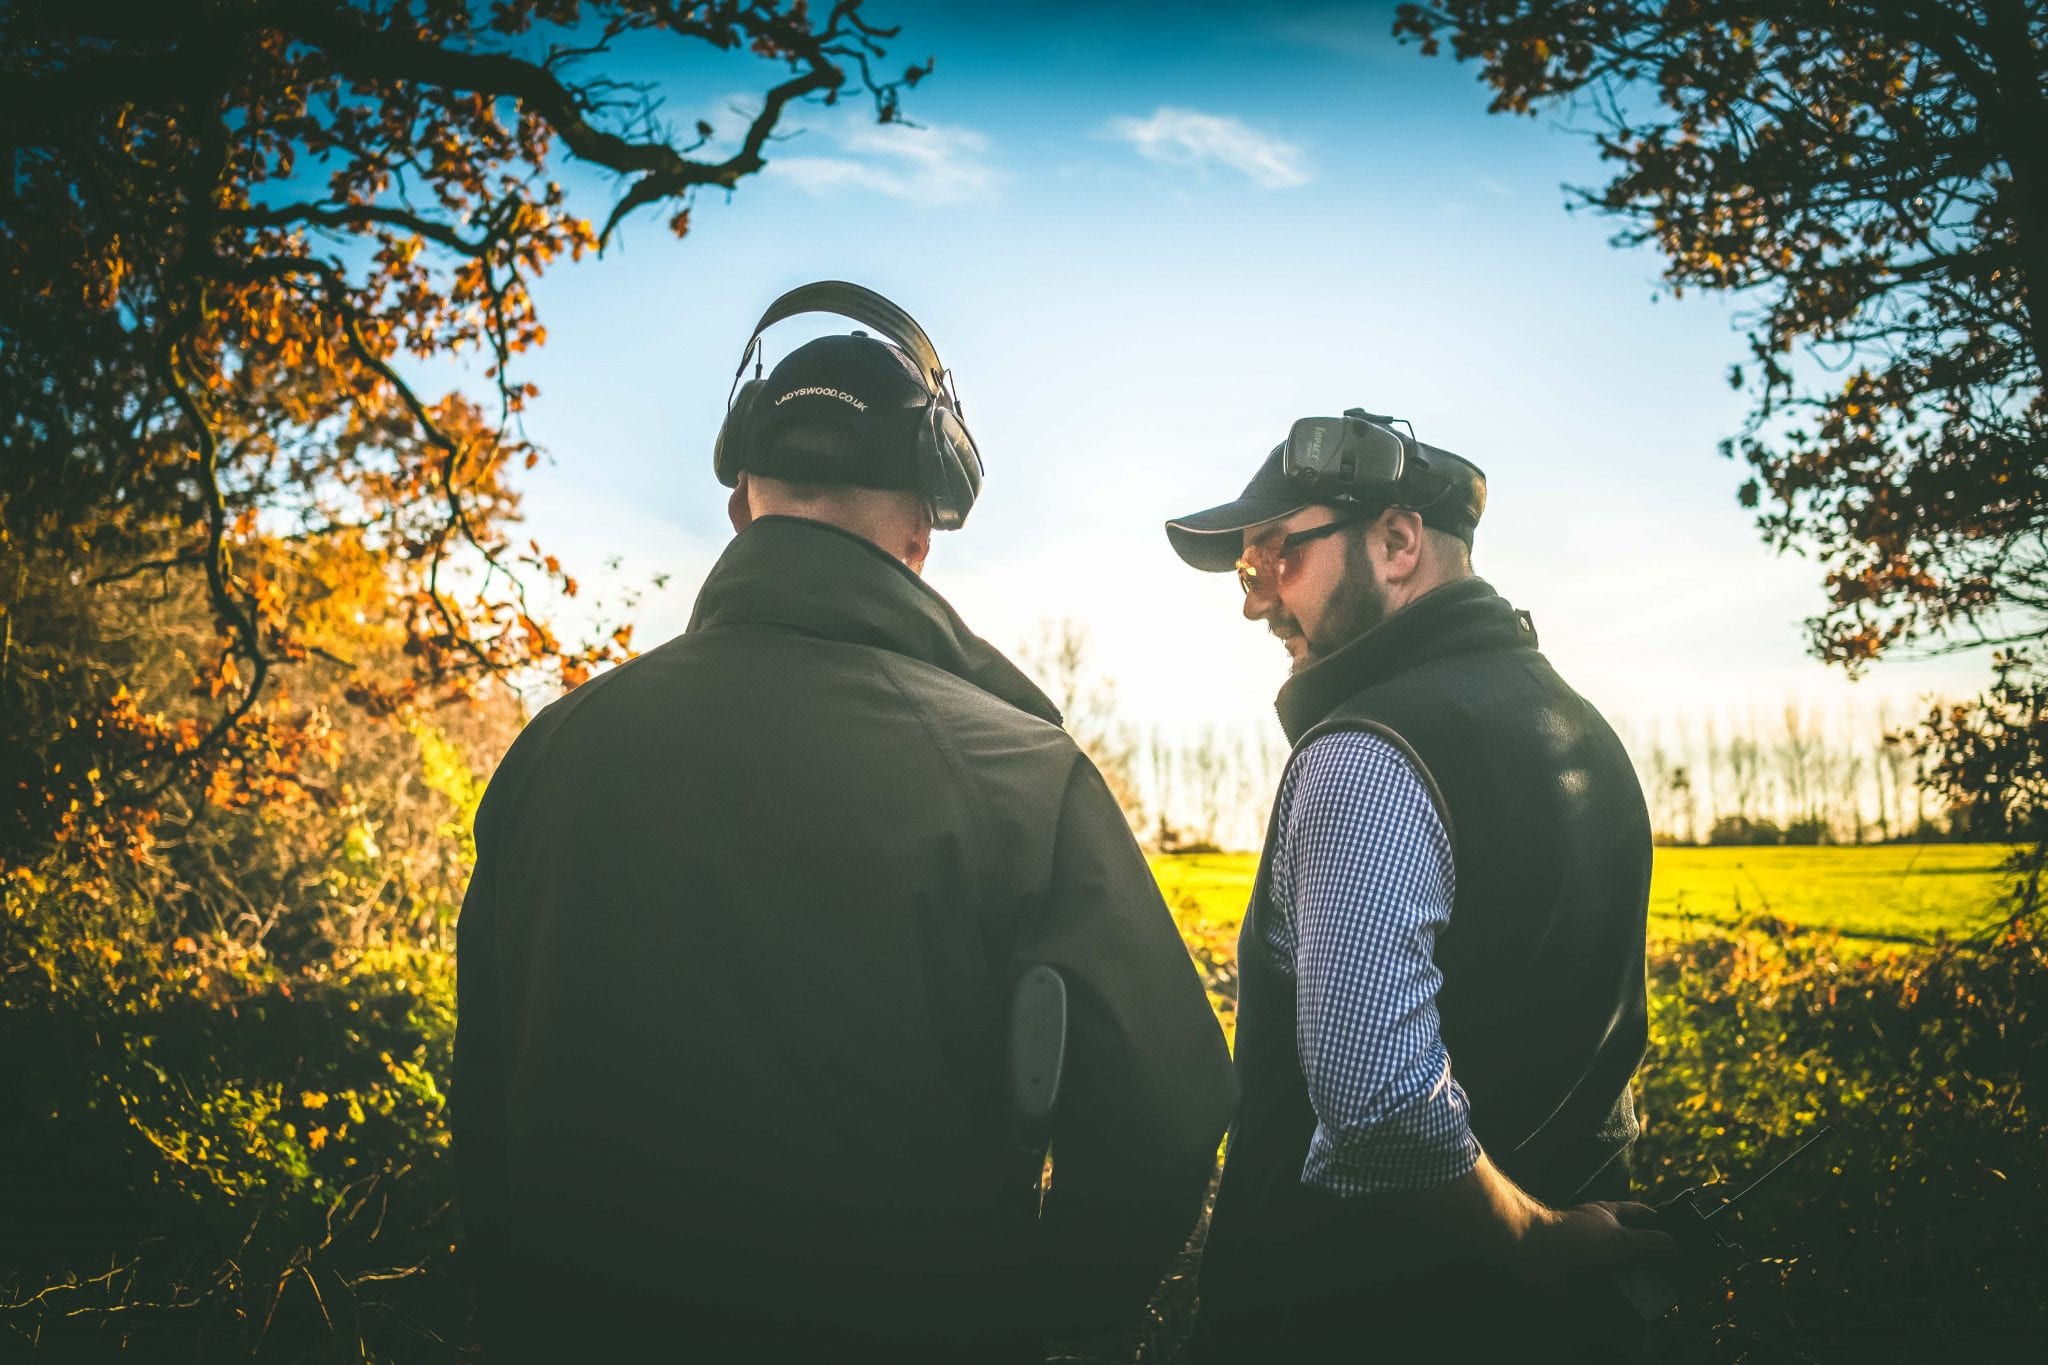 Lady's Wood shooting instructor discusses how to optimise a customer's shooting technique